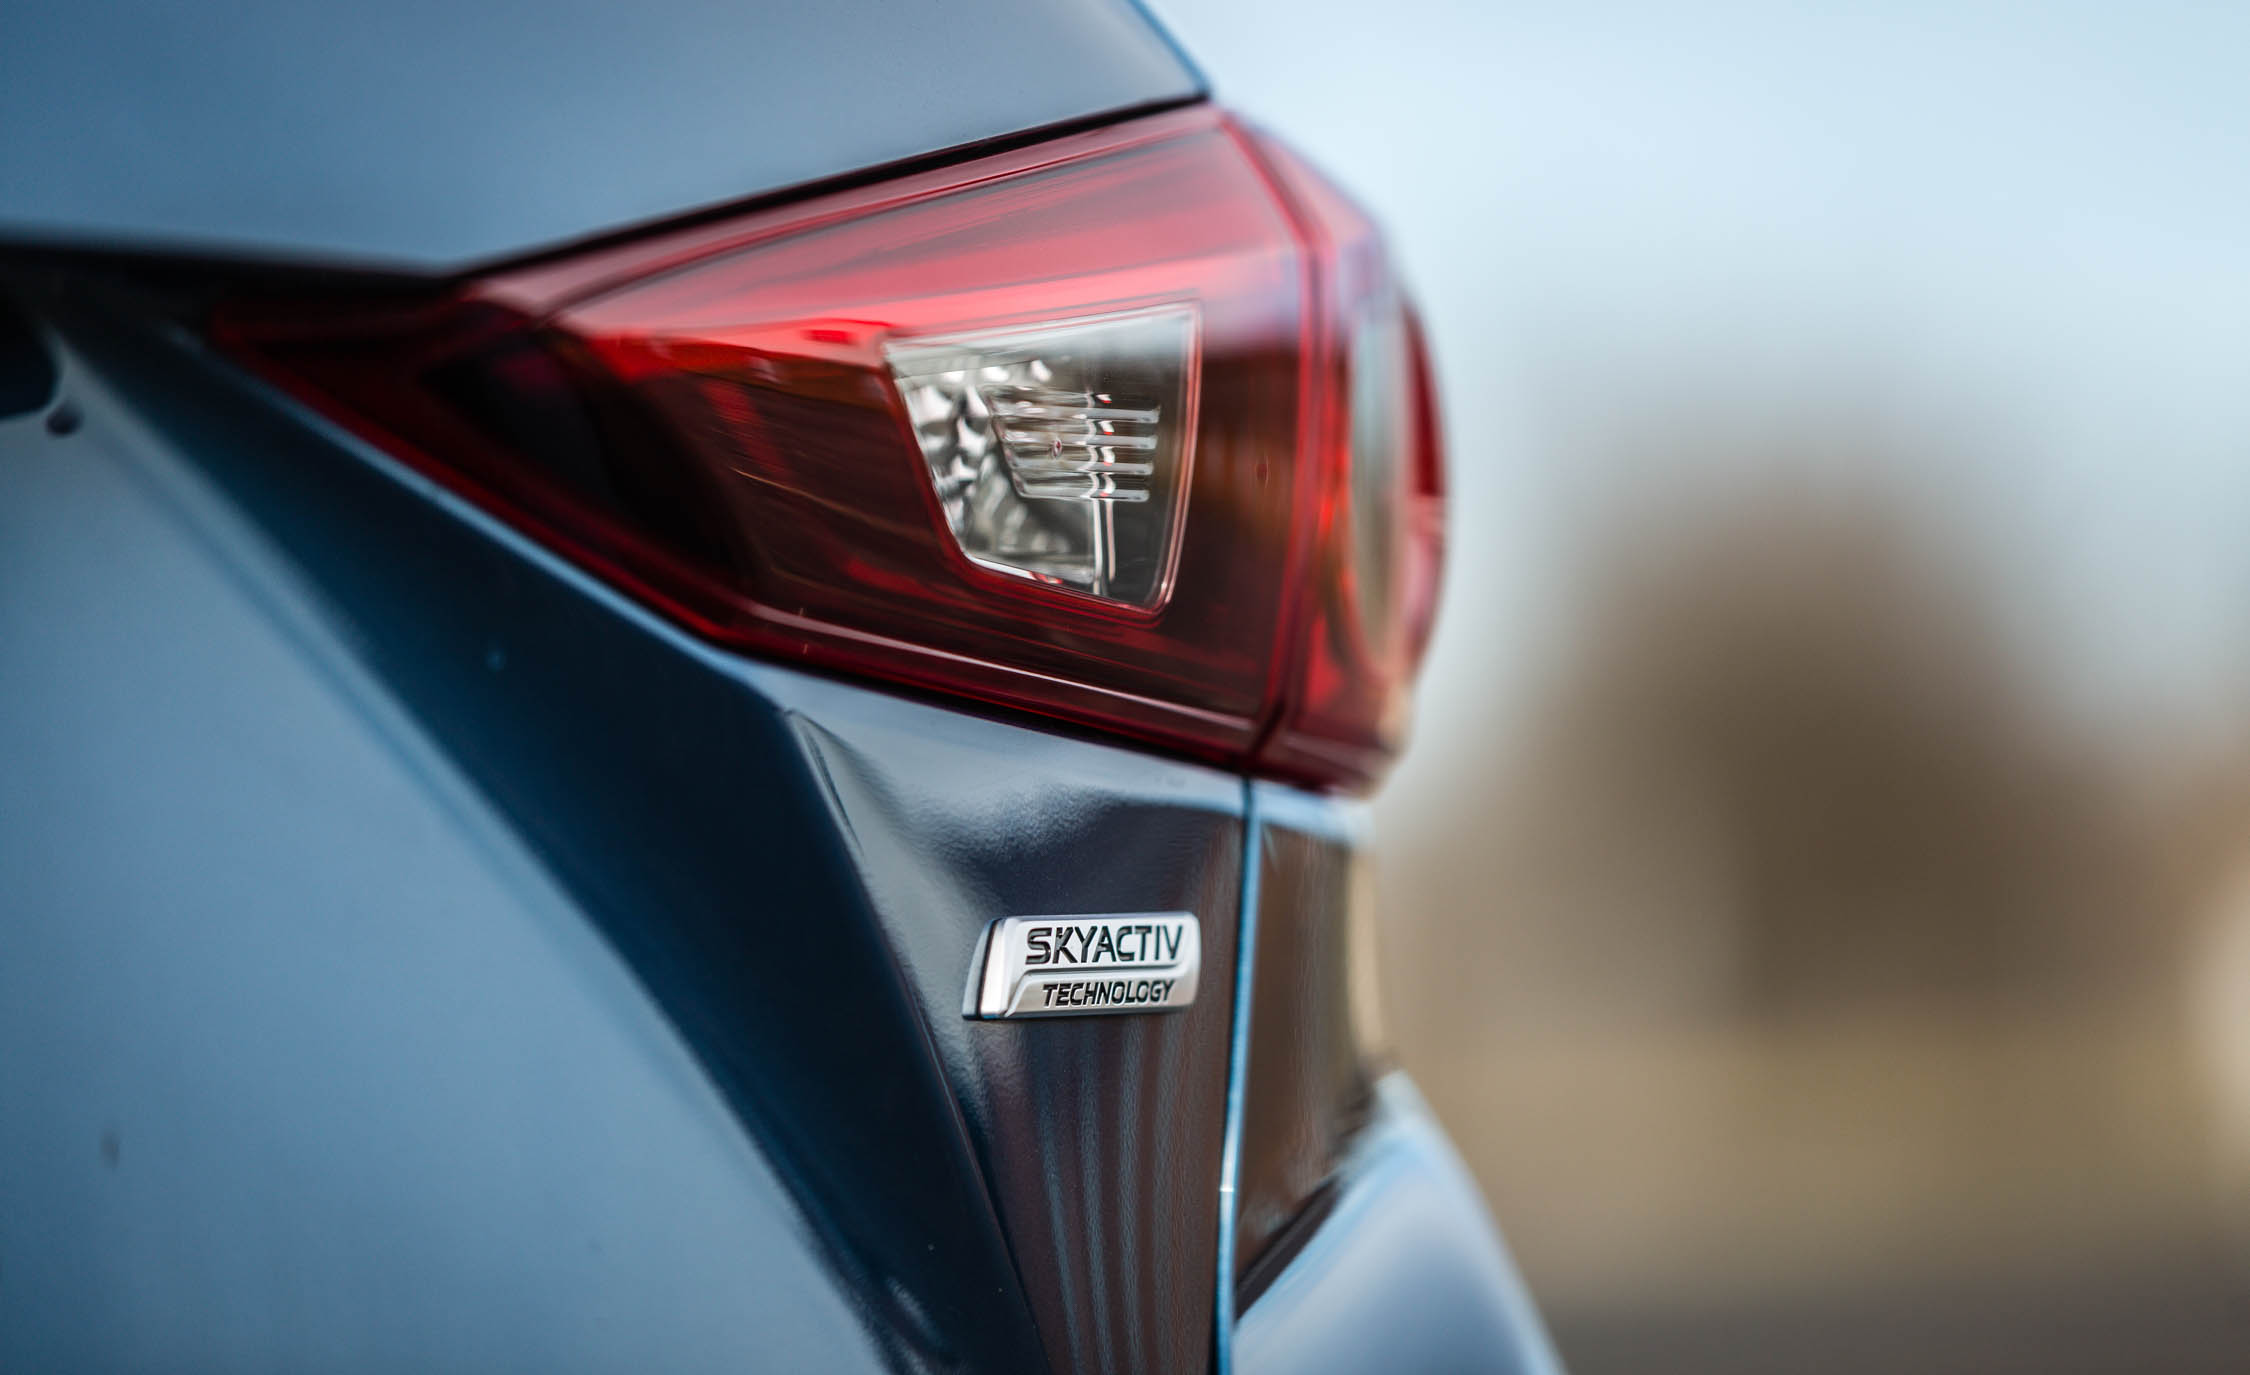 2017 Mazda 3 Grand Touring Sedan Exterior View Rear Emblem (Photo 13 of 51)